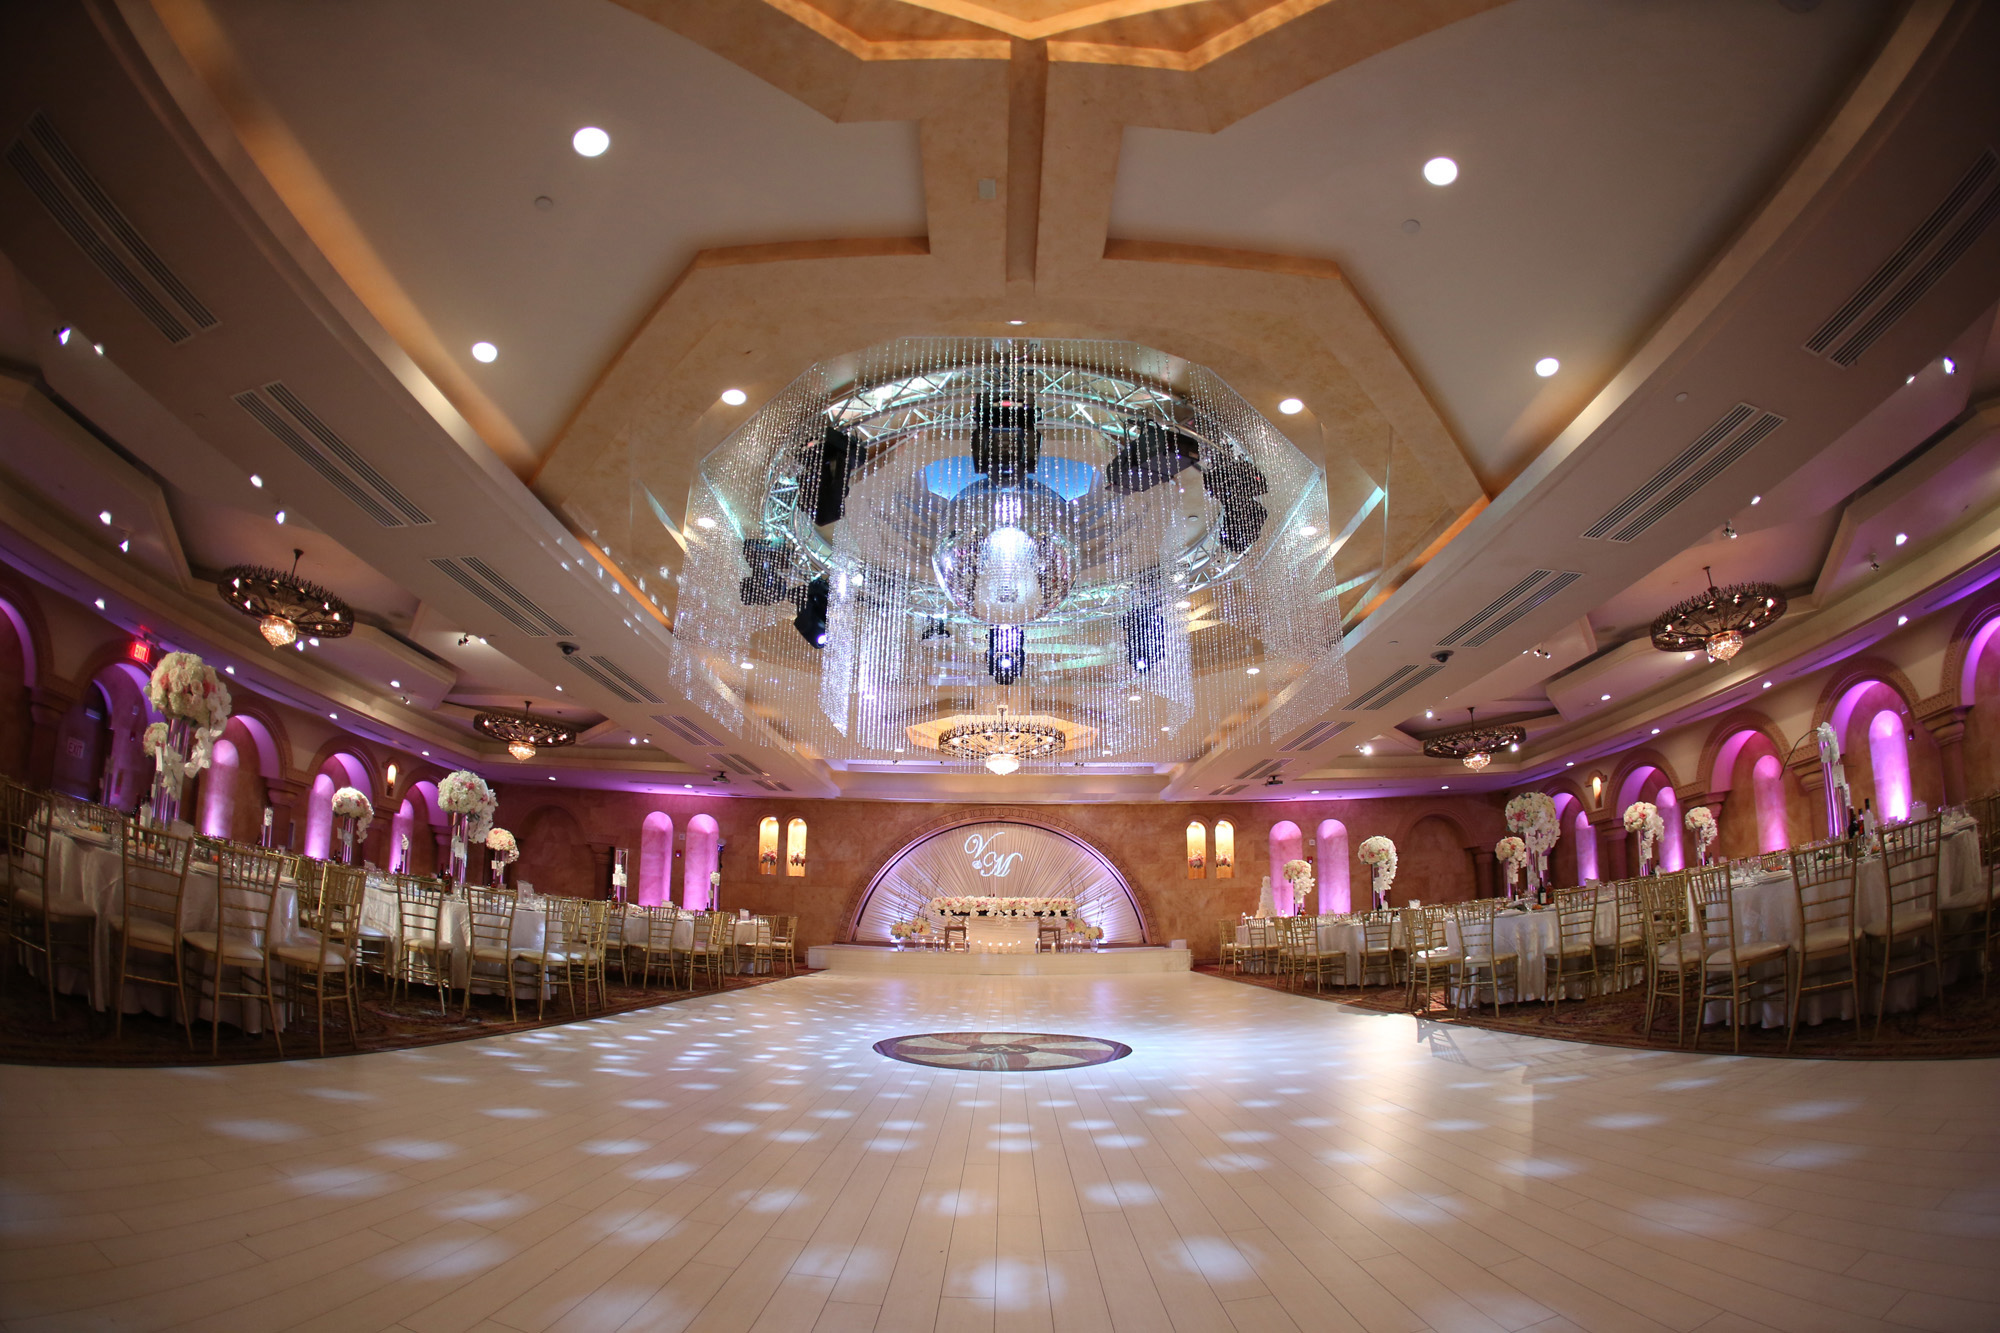 Largest Event Wedding Venue In N Hollywood Ca Le Foyer Ballroom